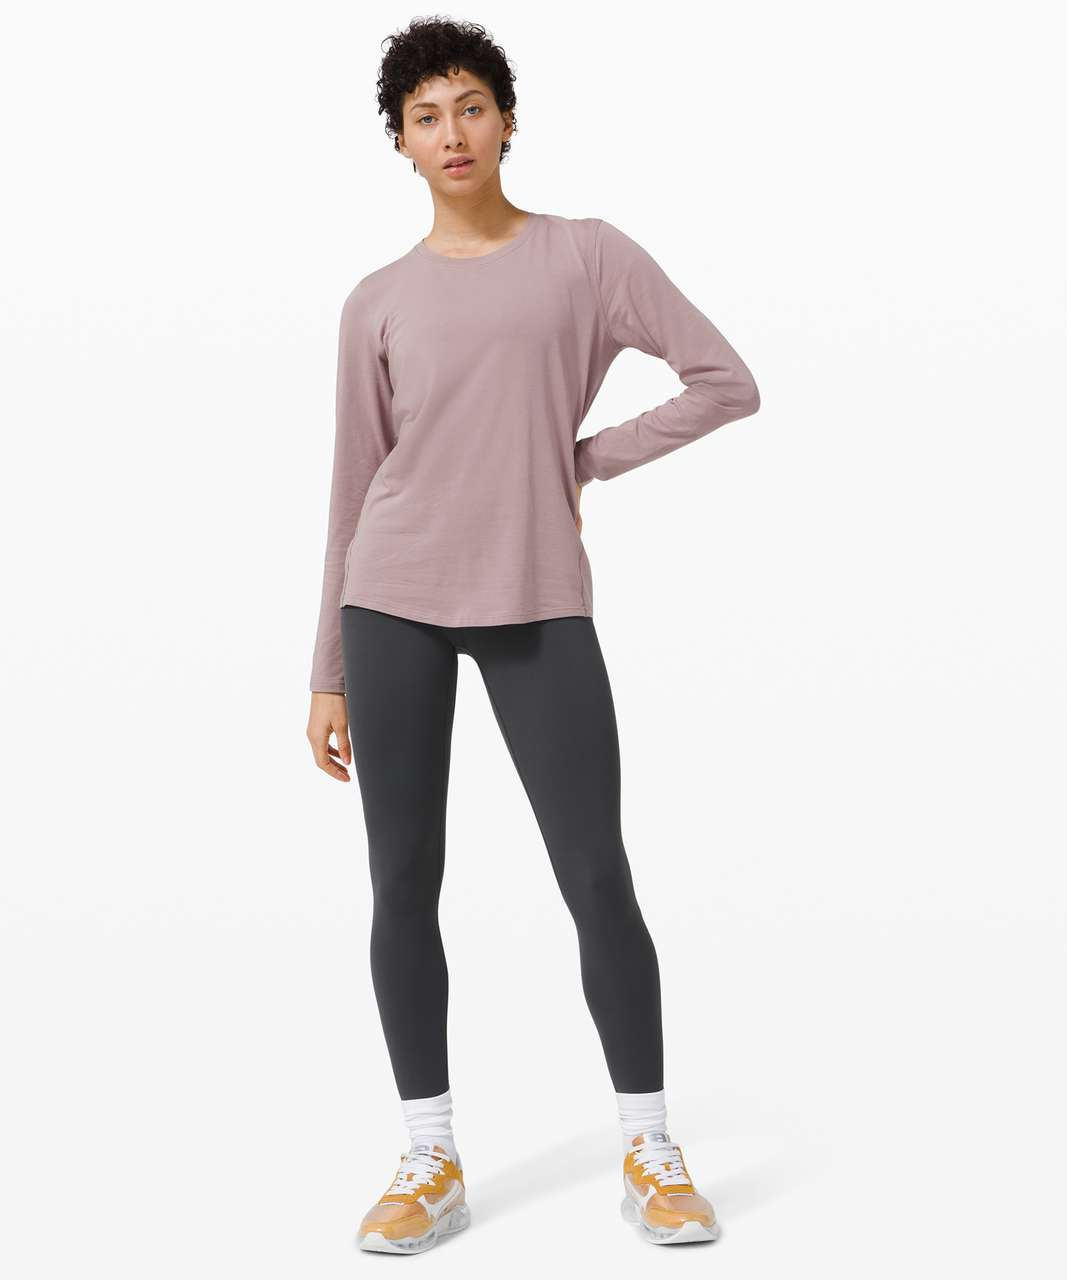 Lululemon Ever Ready Long Sleeve - Violet Verbena